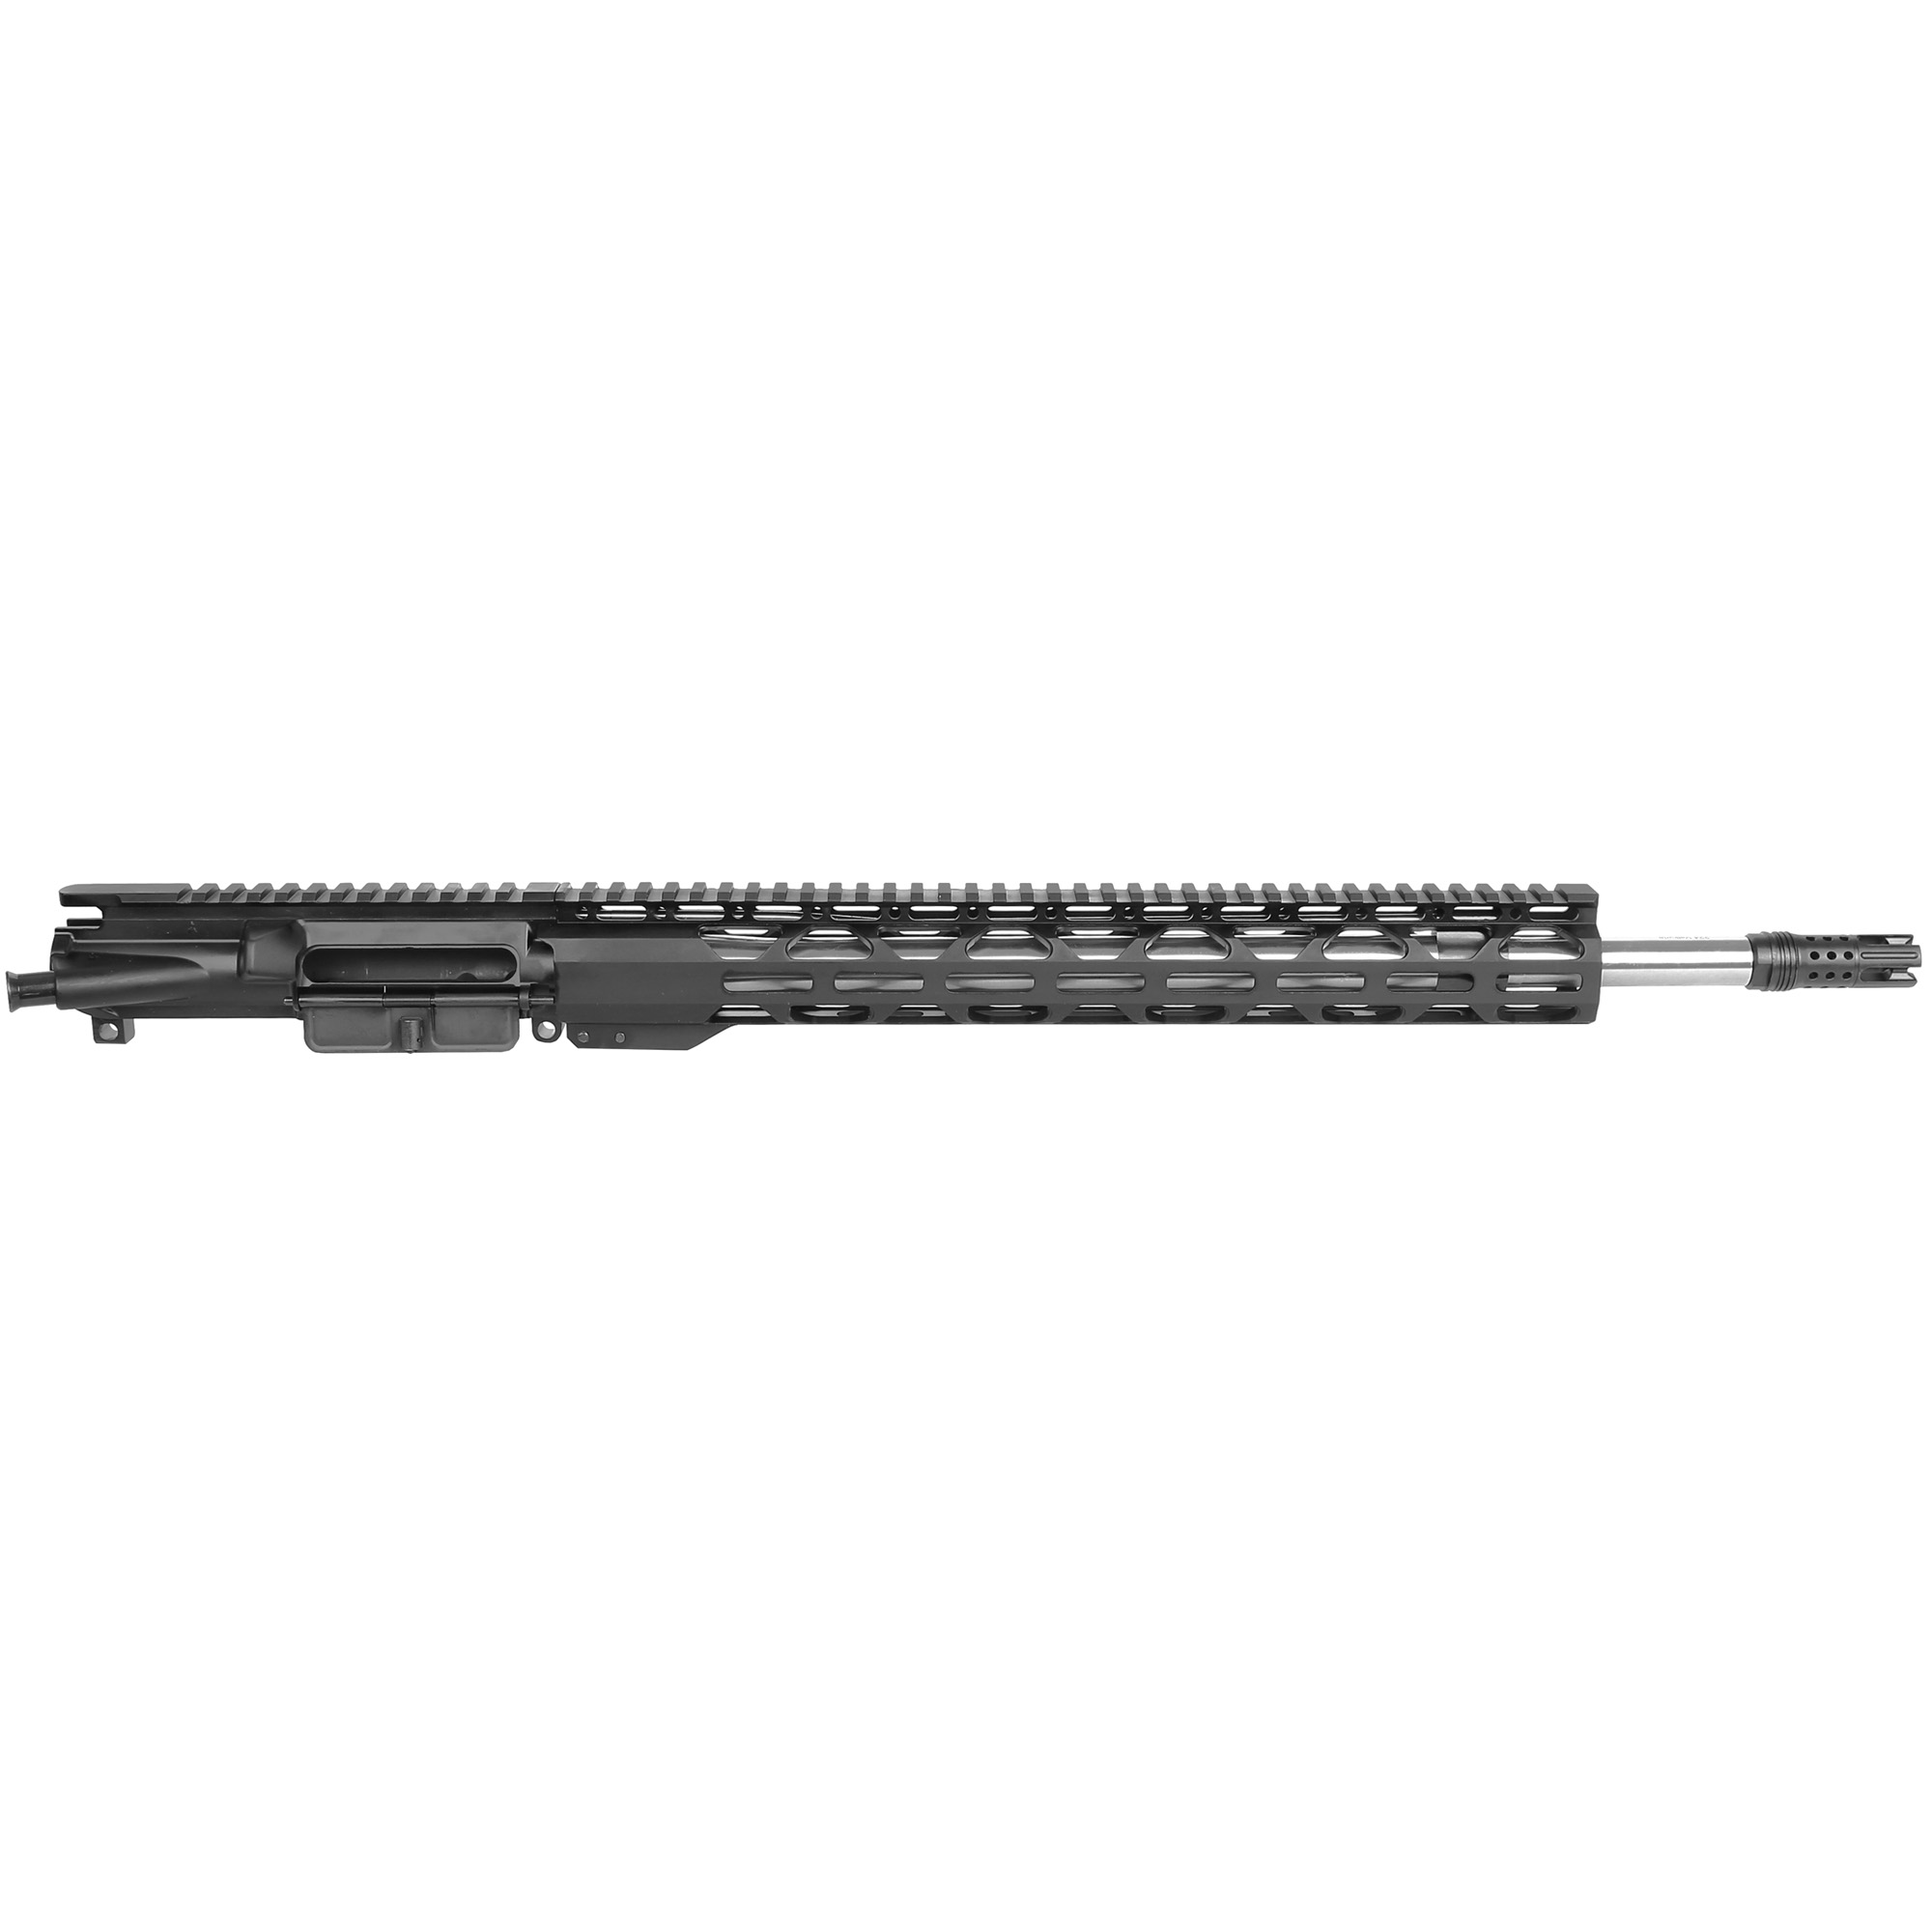 """The Radical Firearms 223 Wylde"""" 18"""" Stainless Steel Barrel"""" is a MIL-STD upper ready to drop on any MIL-STD lower Receiver. Perfect for the novice or advanced shooter wanting to finish out that build and hit the range. Simply add your BCG"""" charging handle and you are ready to go. Built with a 15"""" RPR free float rail system for increased accuracy and keeping your hands cool. No matter what your style of shooting is"""" Radical Firearms has you covered."""